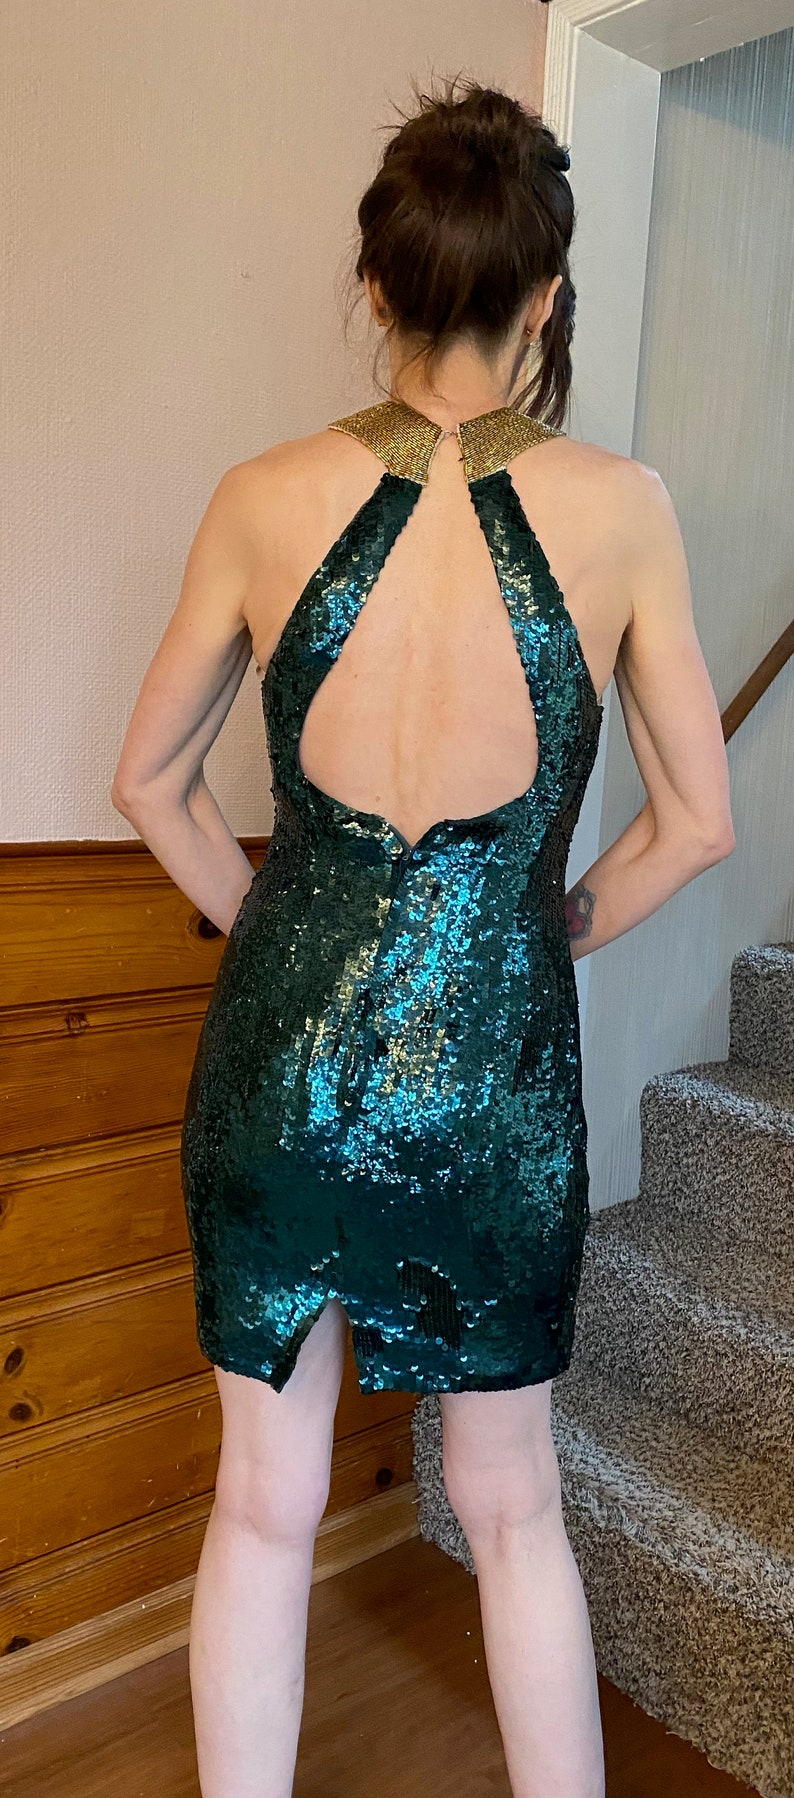 Vtg Beaded Sequin Open Back Cocktail Dress Sz 4 6 Robert Anthony 80/'s 90/'s Party Evening green gold Wiggle